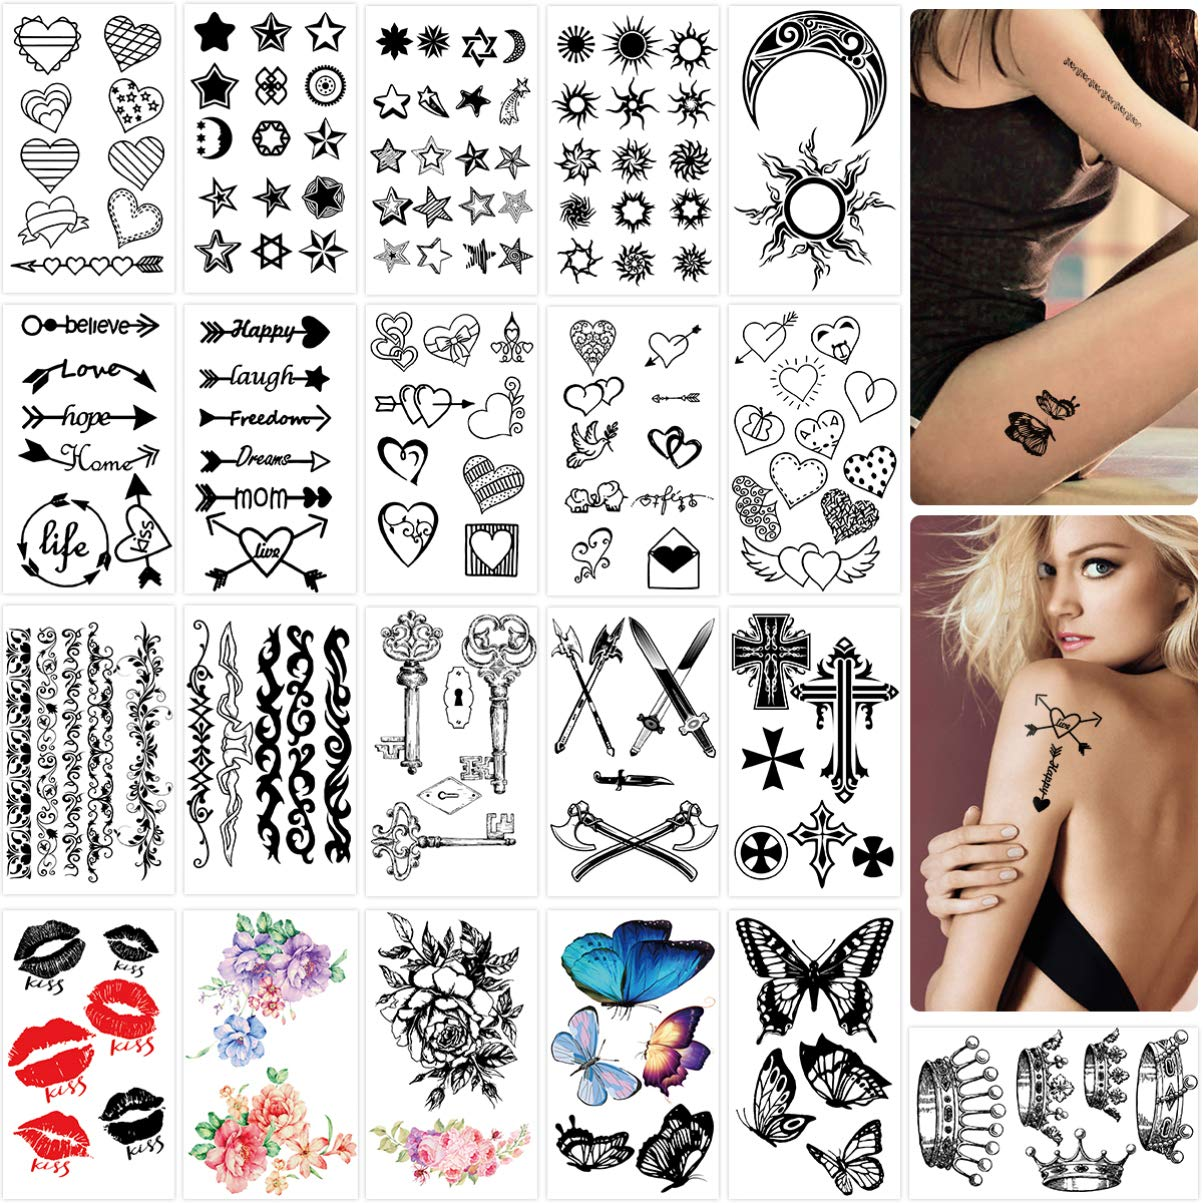 Tattoo stickers, Tiny Waterproof Fake Tattoos Temporary Tattoos Body Art Sticker for Adults, 42 Sheets